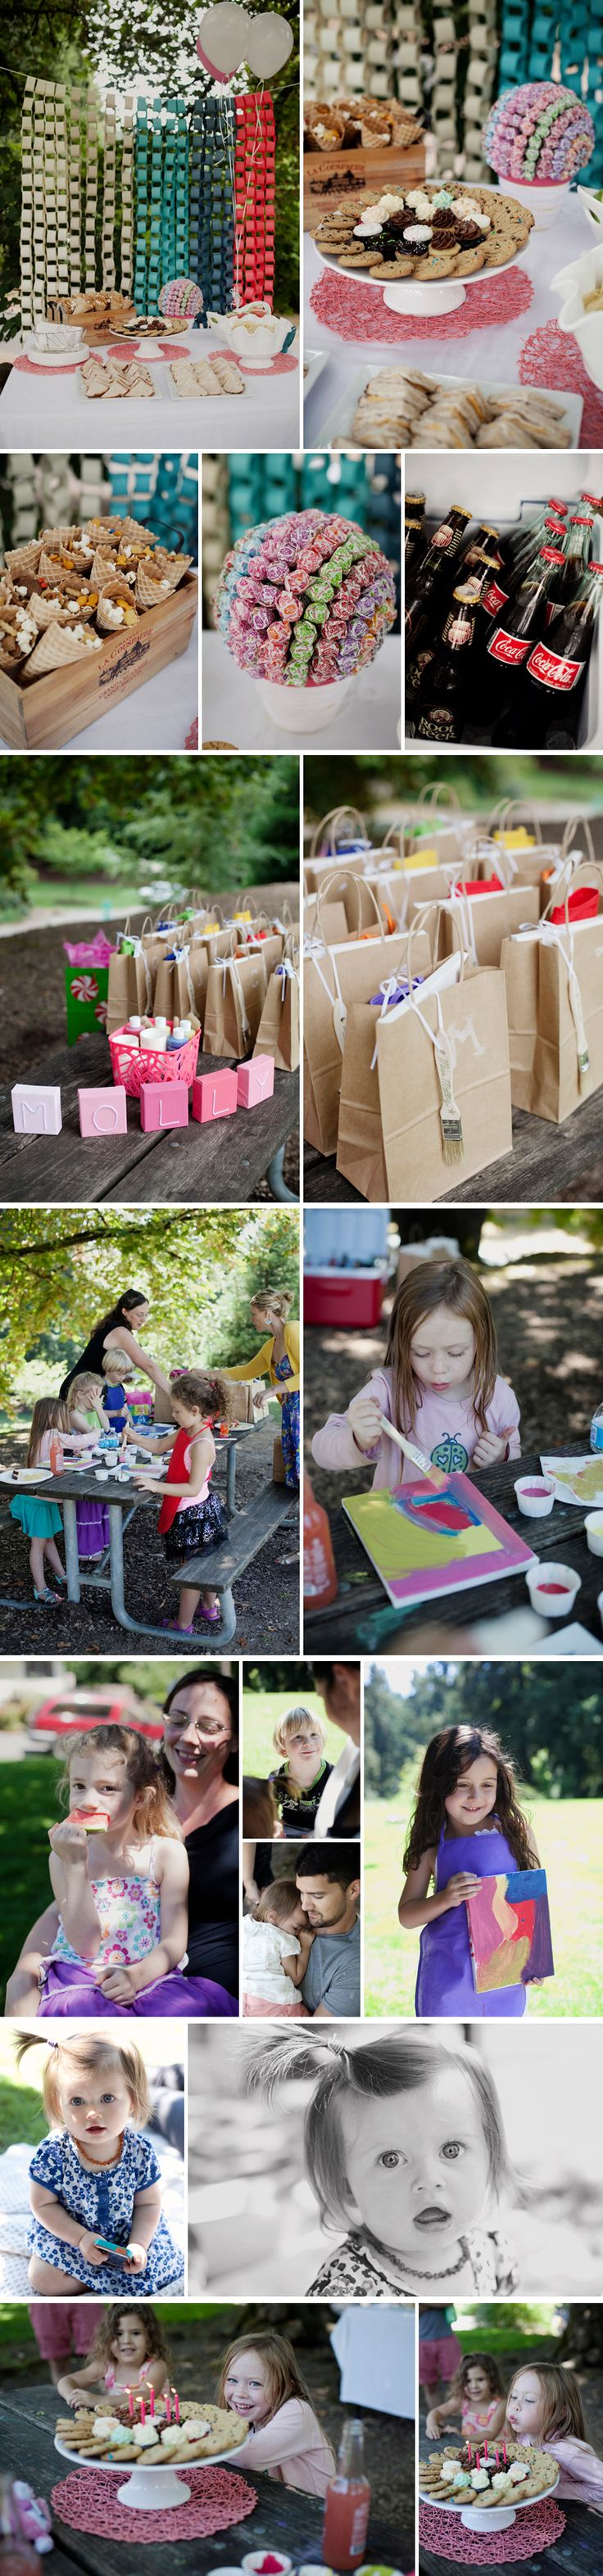 Giant Bubbles and Painting at the Park -- a 5 year old's Birthday Party. http://saramayphotography.com/big-bubbles-painting-at-the-park-mollys-5th-birthday/  ombre decor, ombre backdrop, ombre paper rings, kid birthday, park birthday party, painting party, giant bubbles